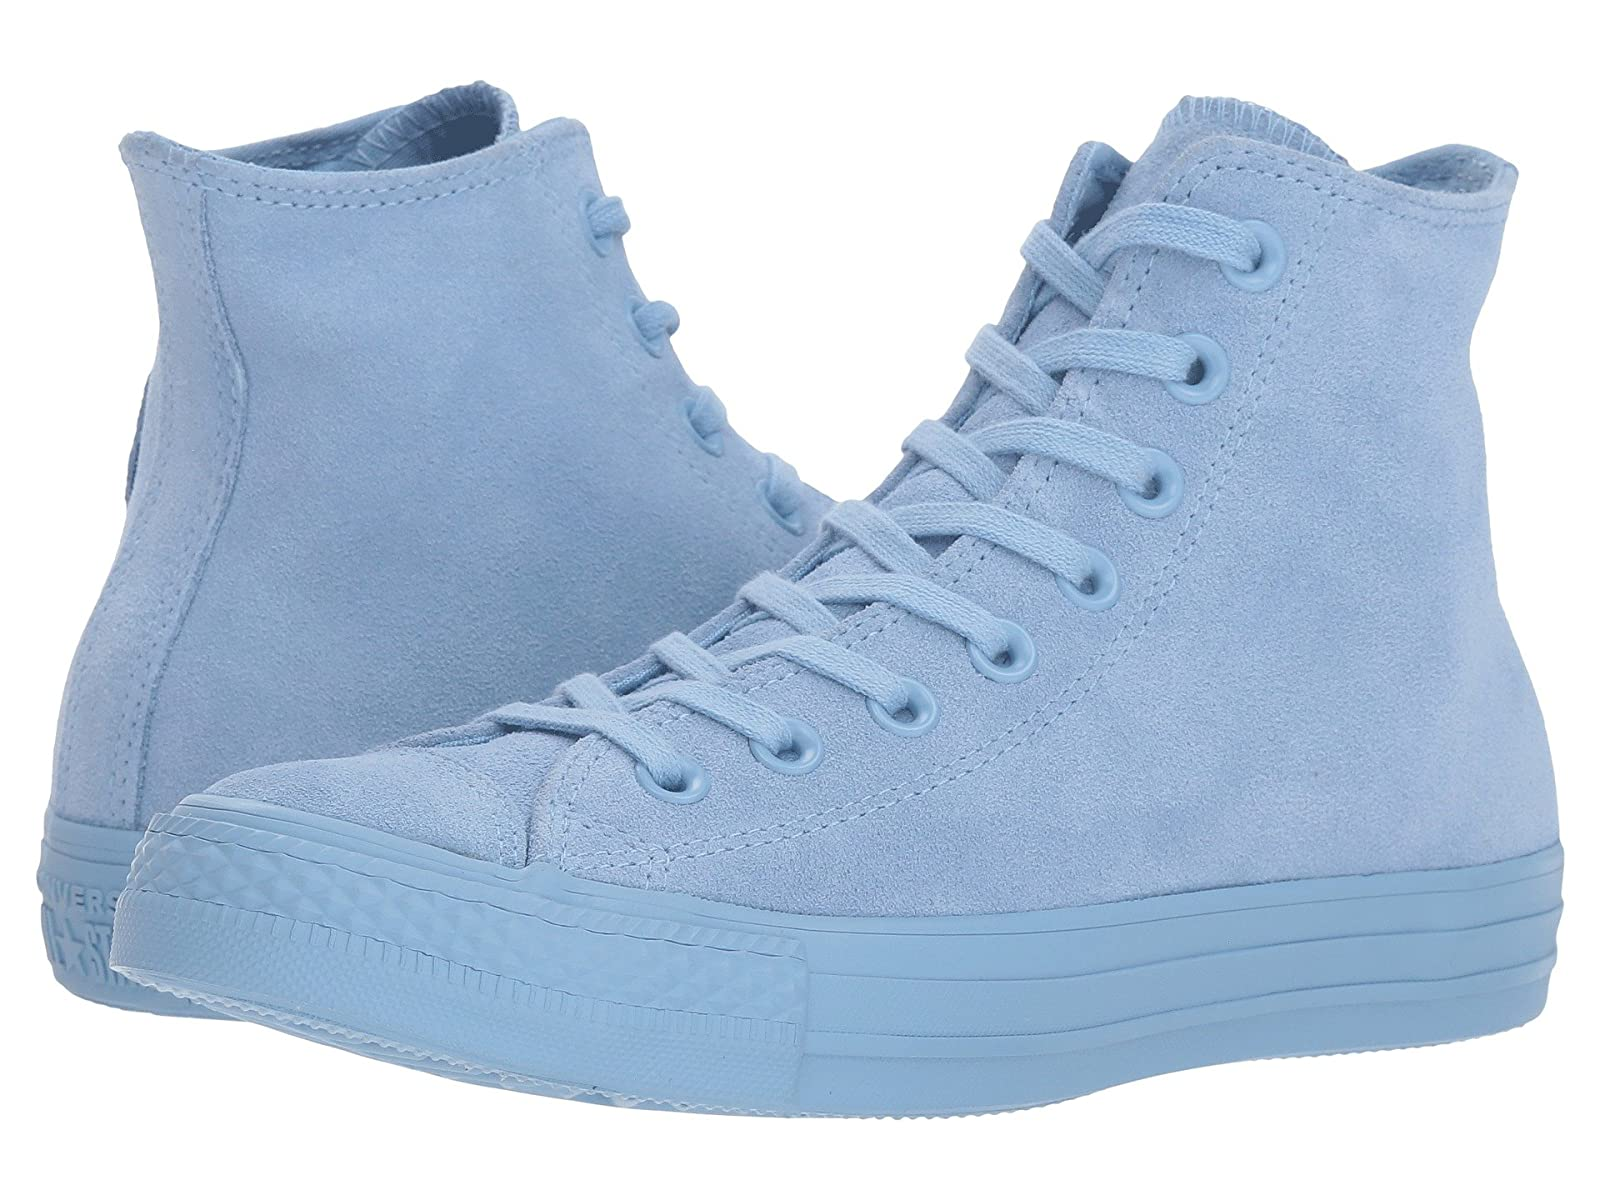 Converse Chuck Taylor® All Star® Hi - Mono SuedeAtmospheric grades have affordable shoes